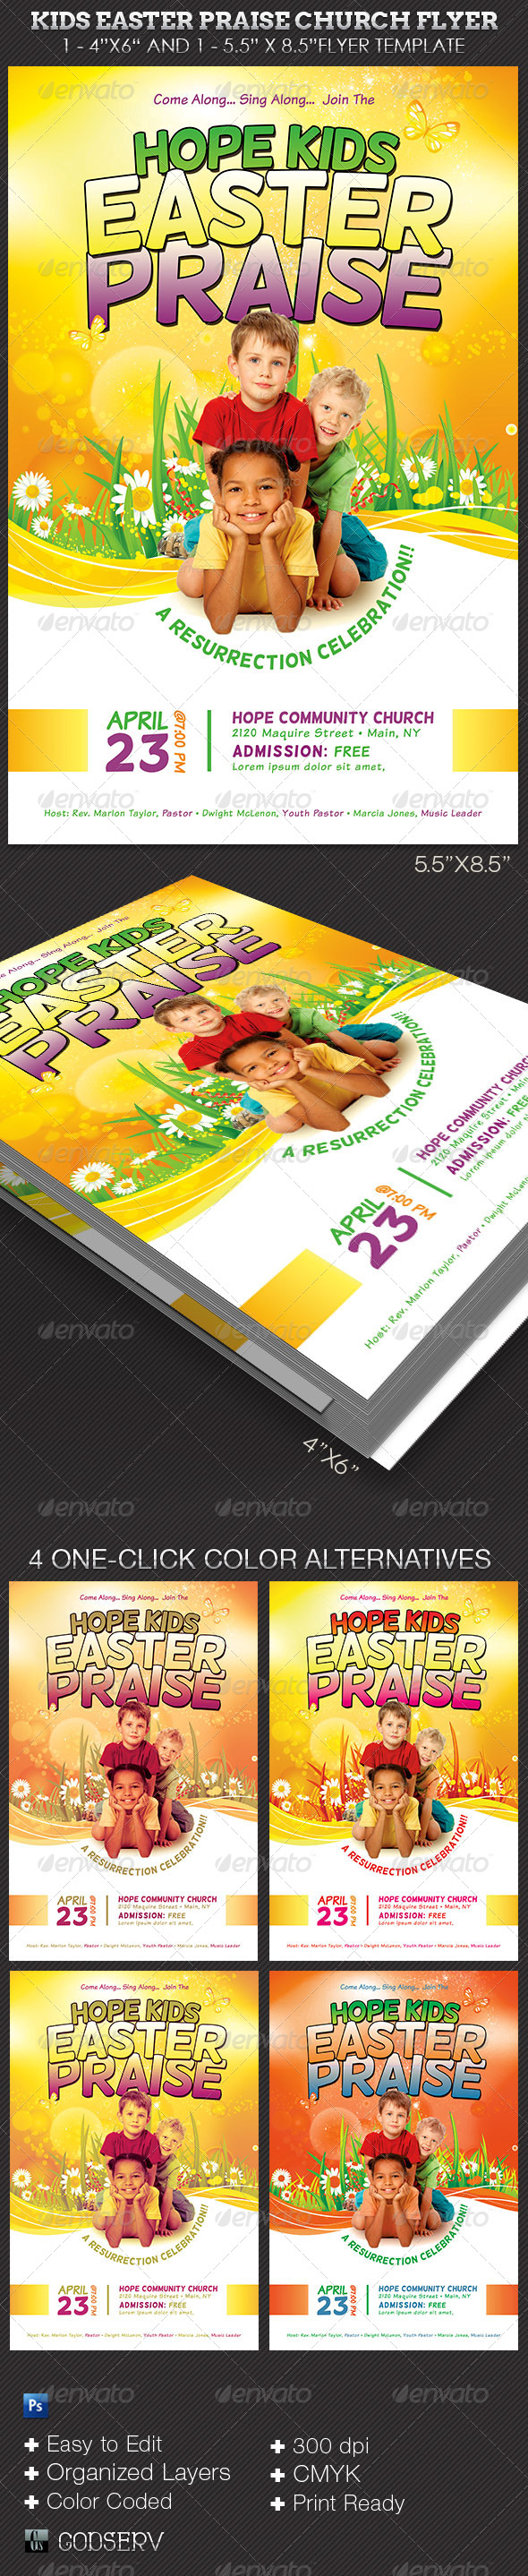 GraphicRiver Kids Easter Praise Church Flyer Template 7293612